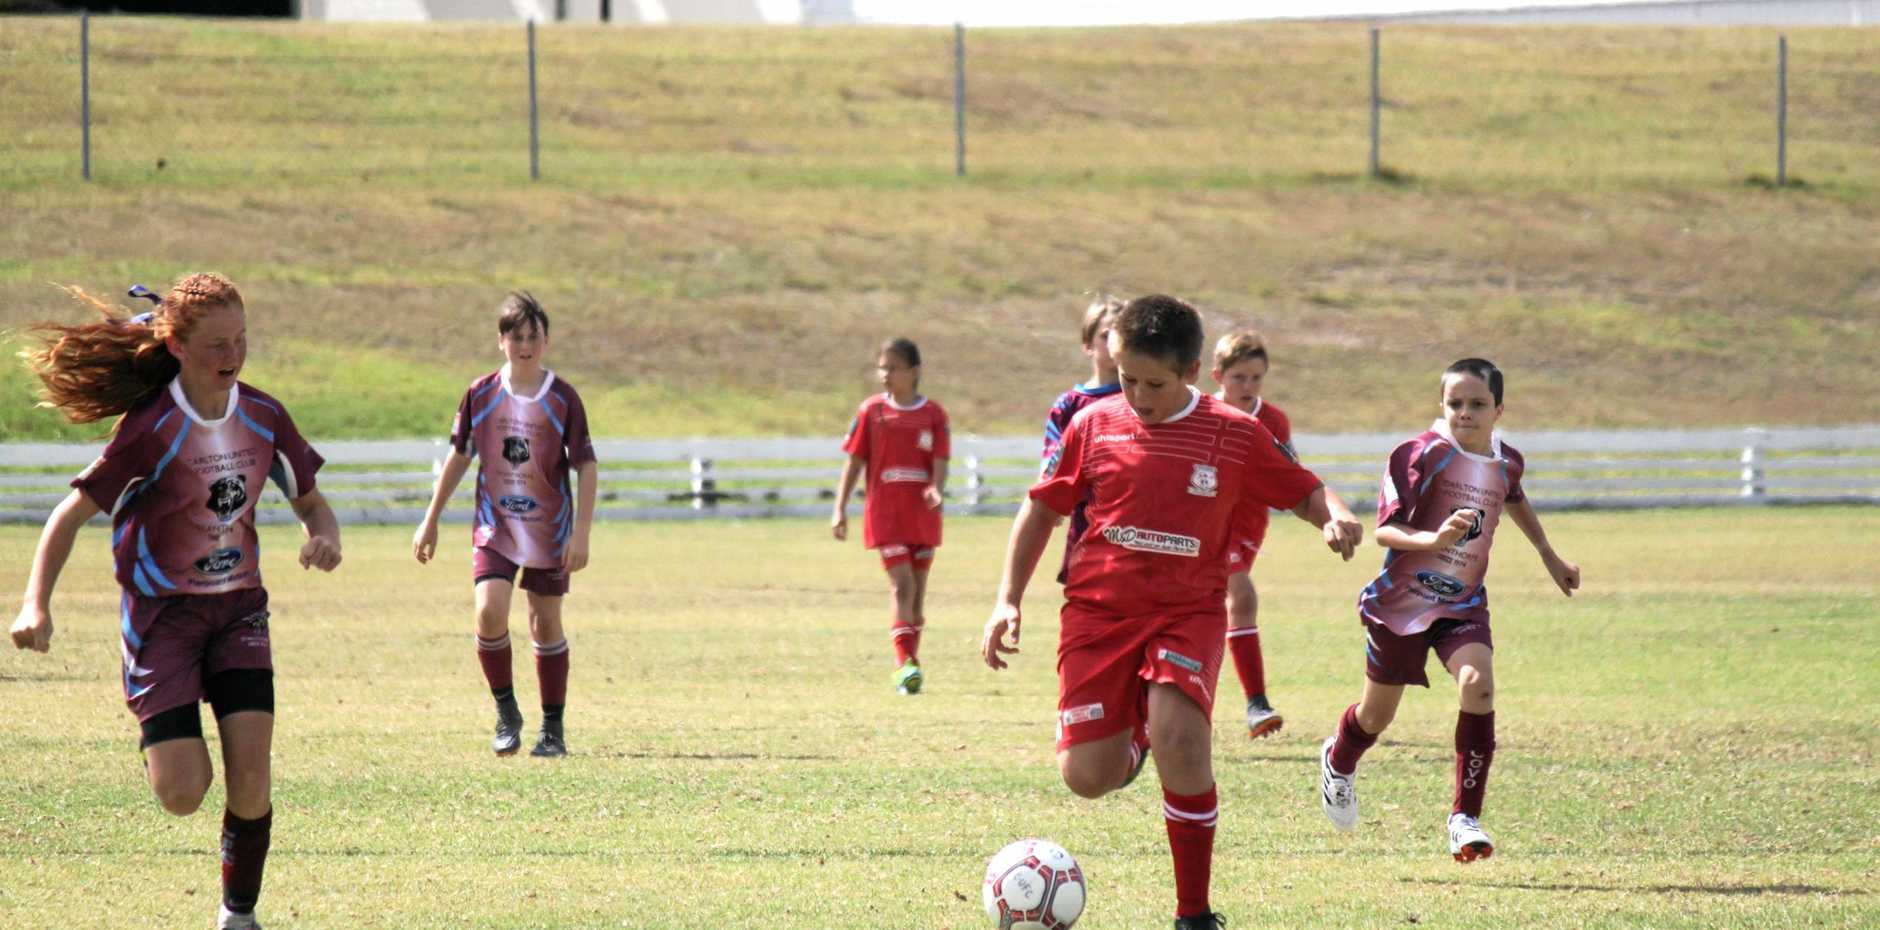 Ballandean and Carlton junior colts battled it out at C.F White on Saturday.